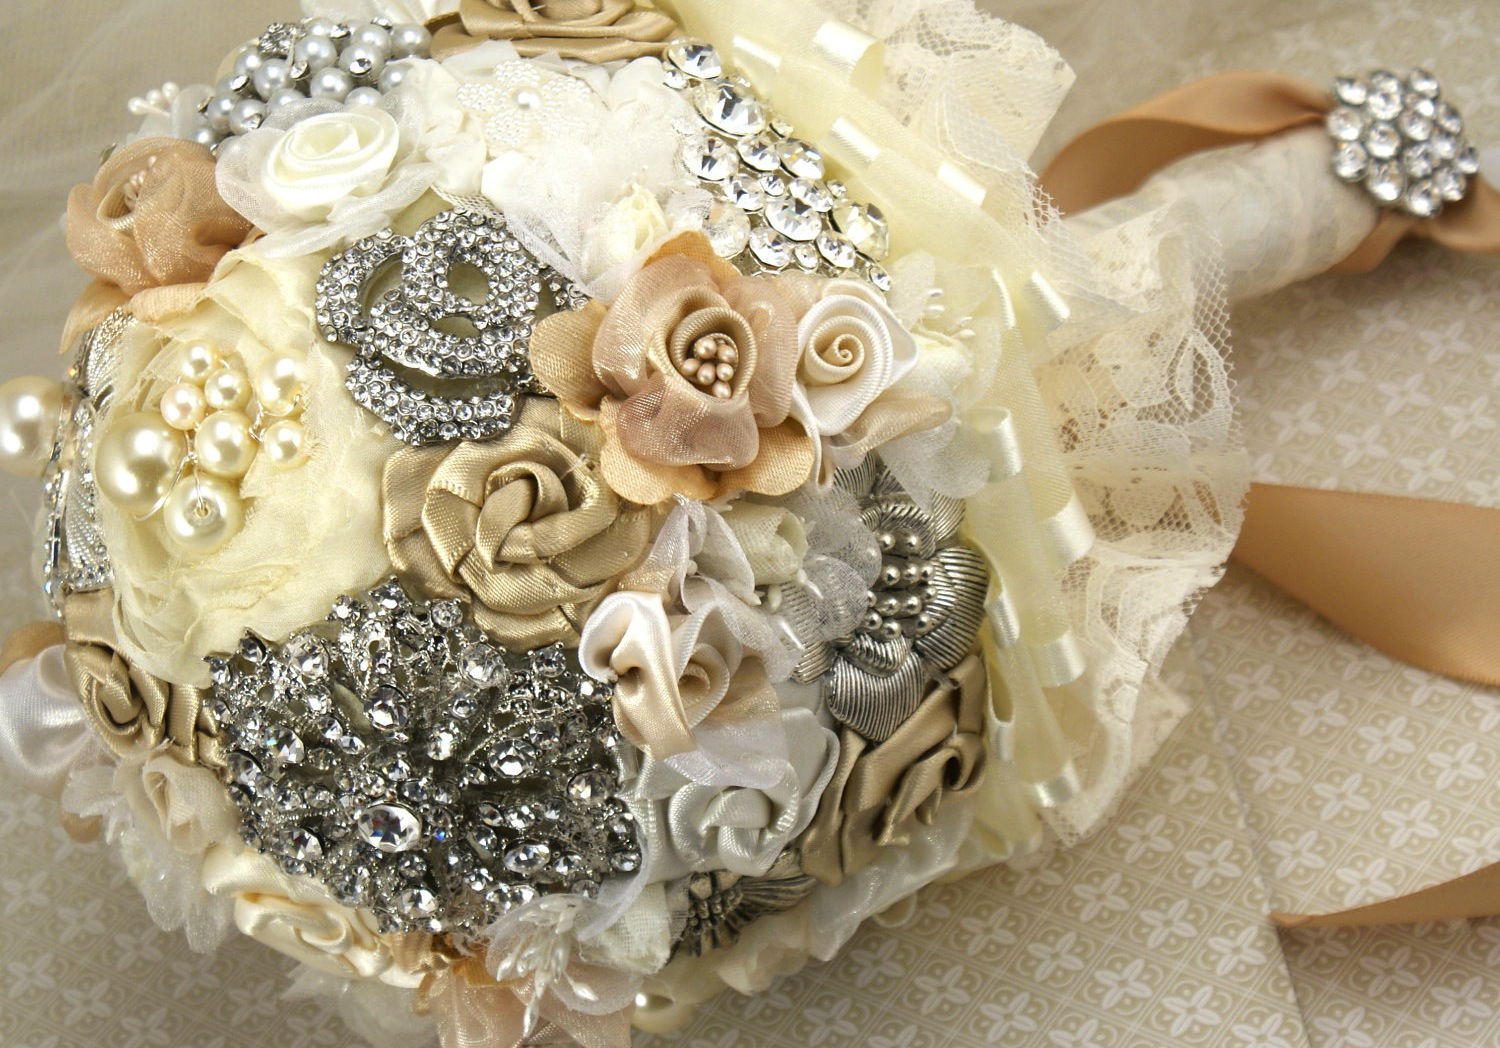 Pearl-wedding-accessories-handmade-etsy-wedding-finds-brooch-bouquet.original